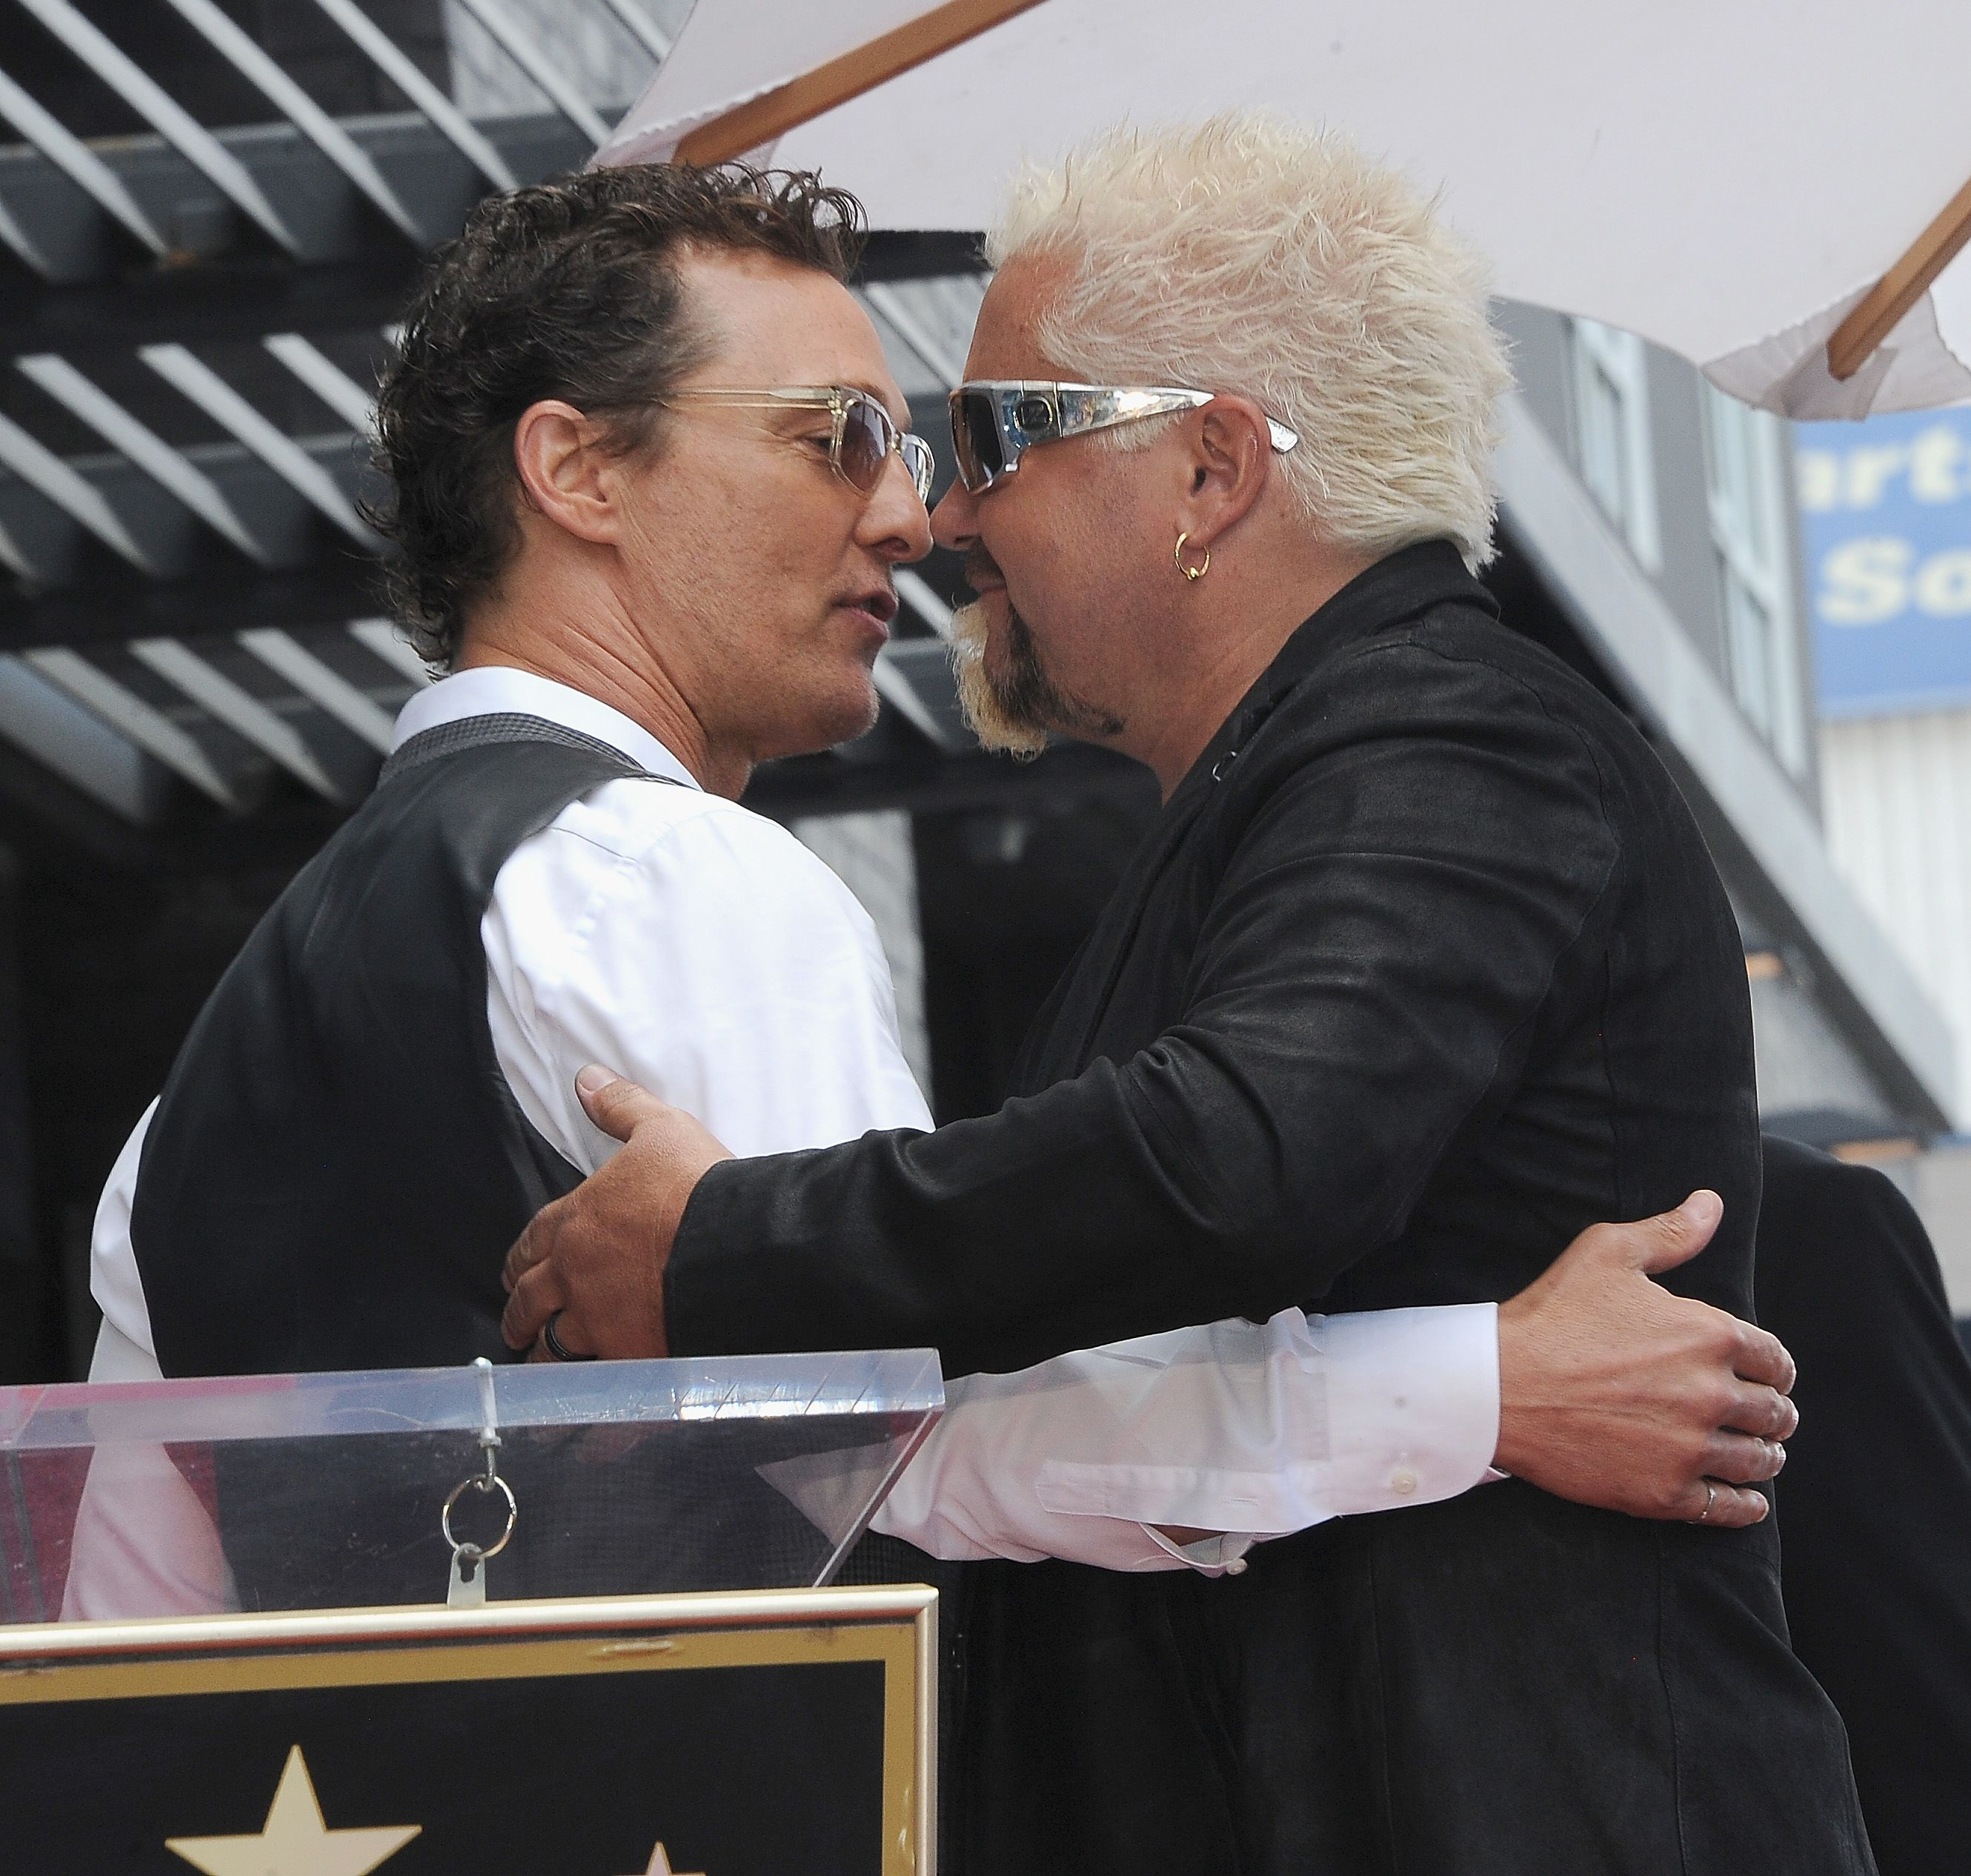 Guy Fieri, Matthew McConaughey's Friendship Explained - How ...